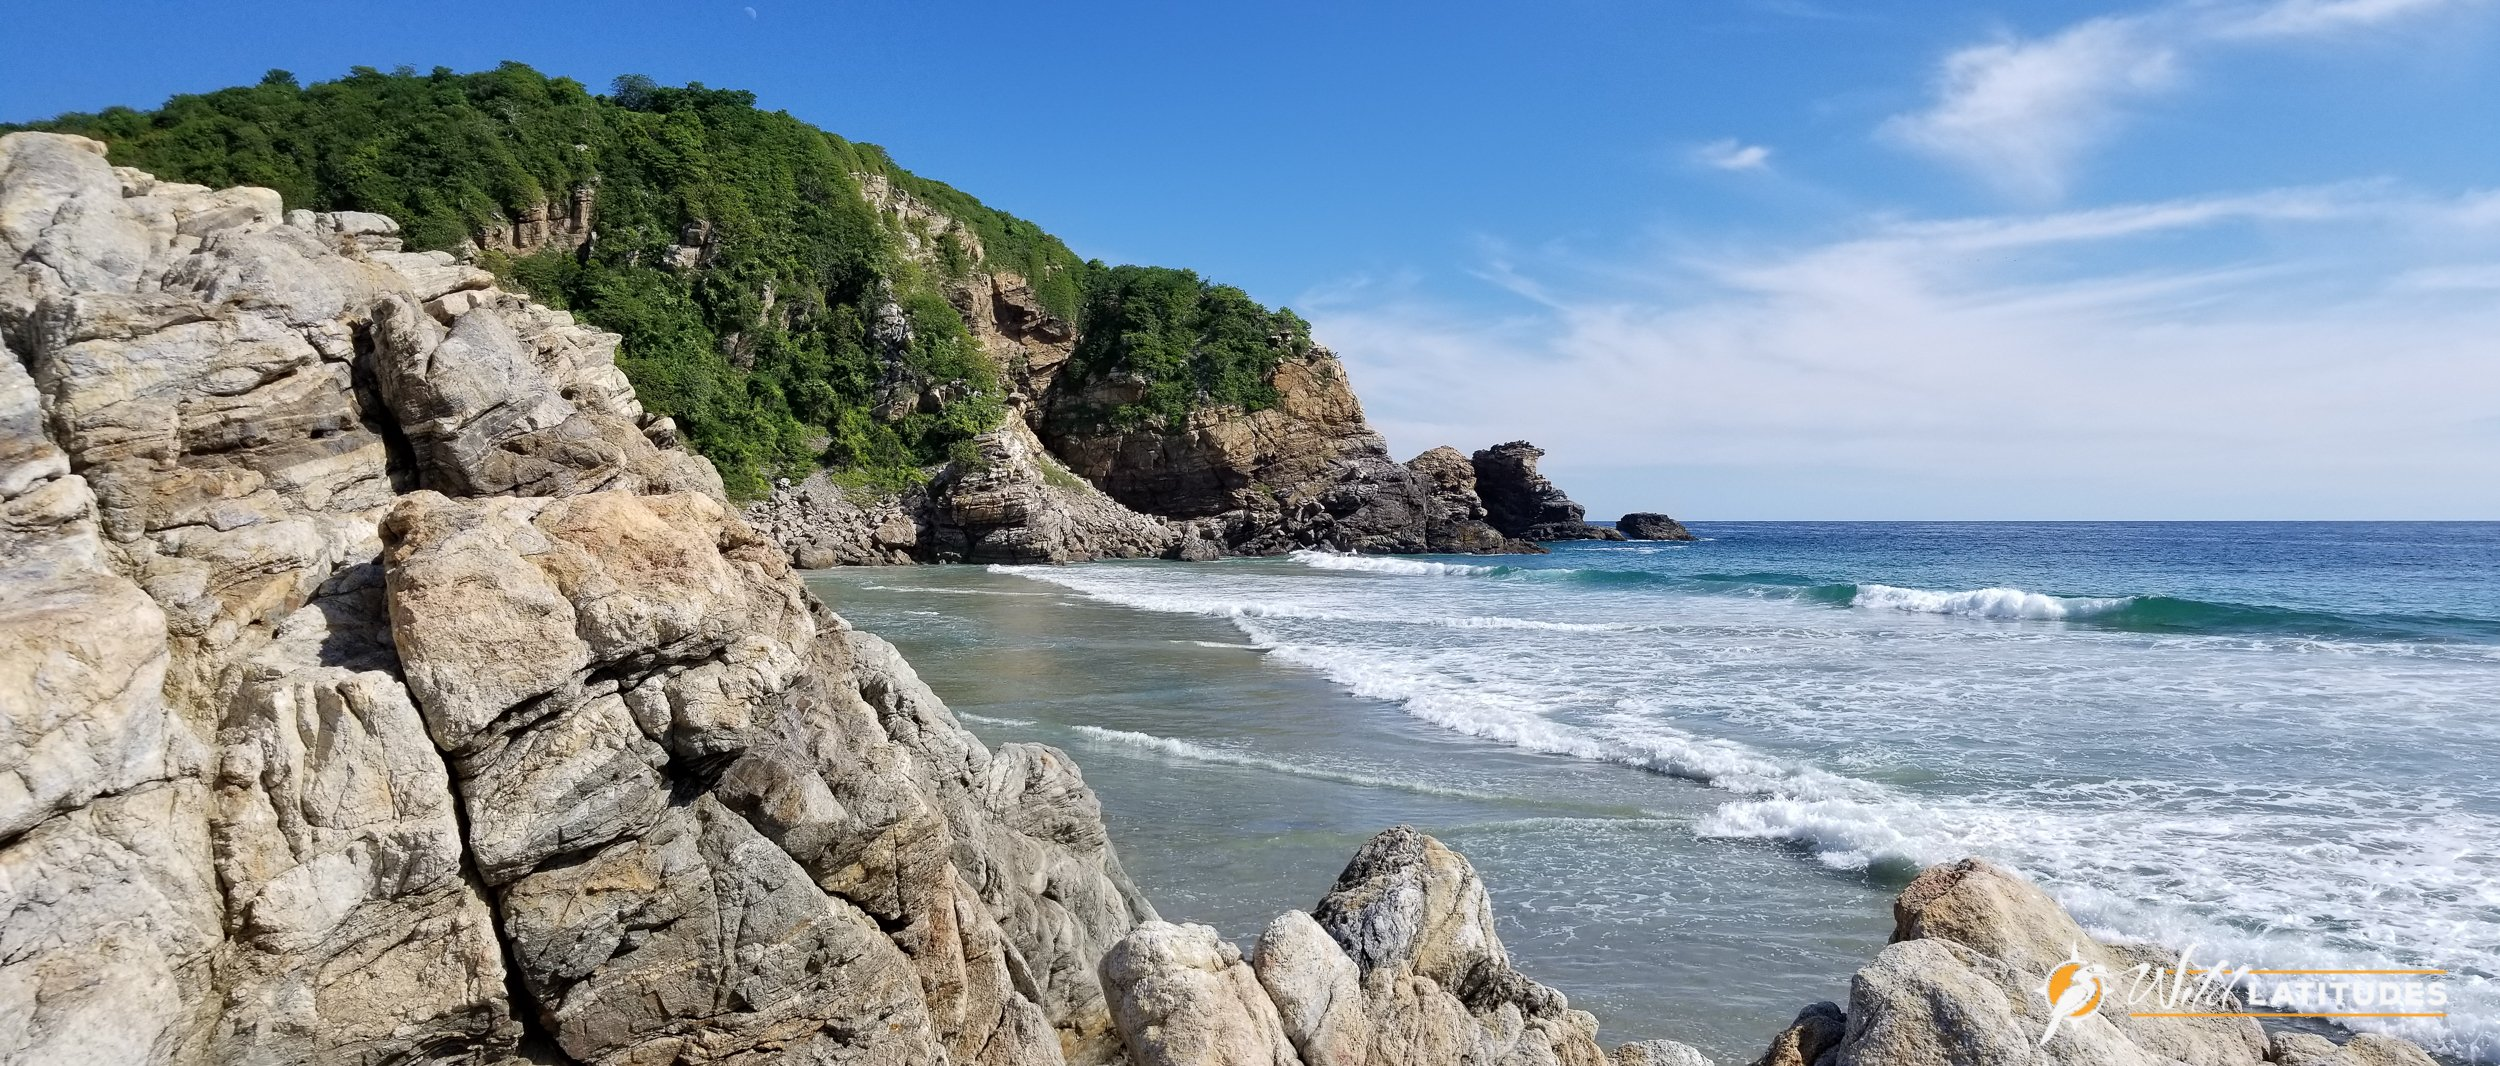 Beautiful coastline in Oaxaca, Mexico